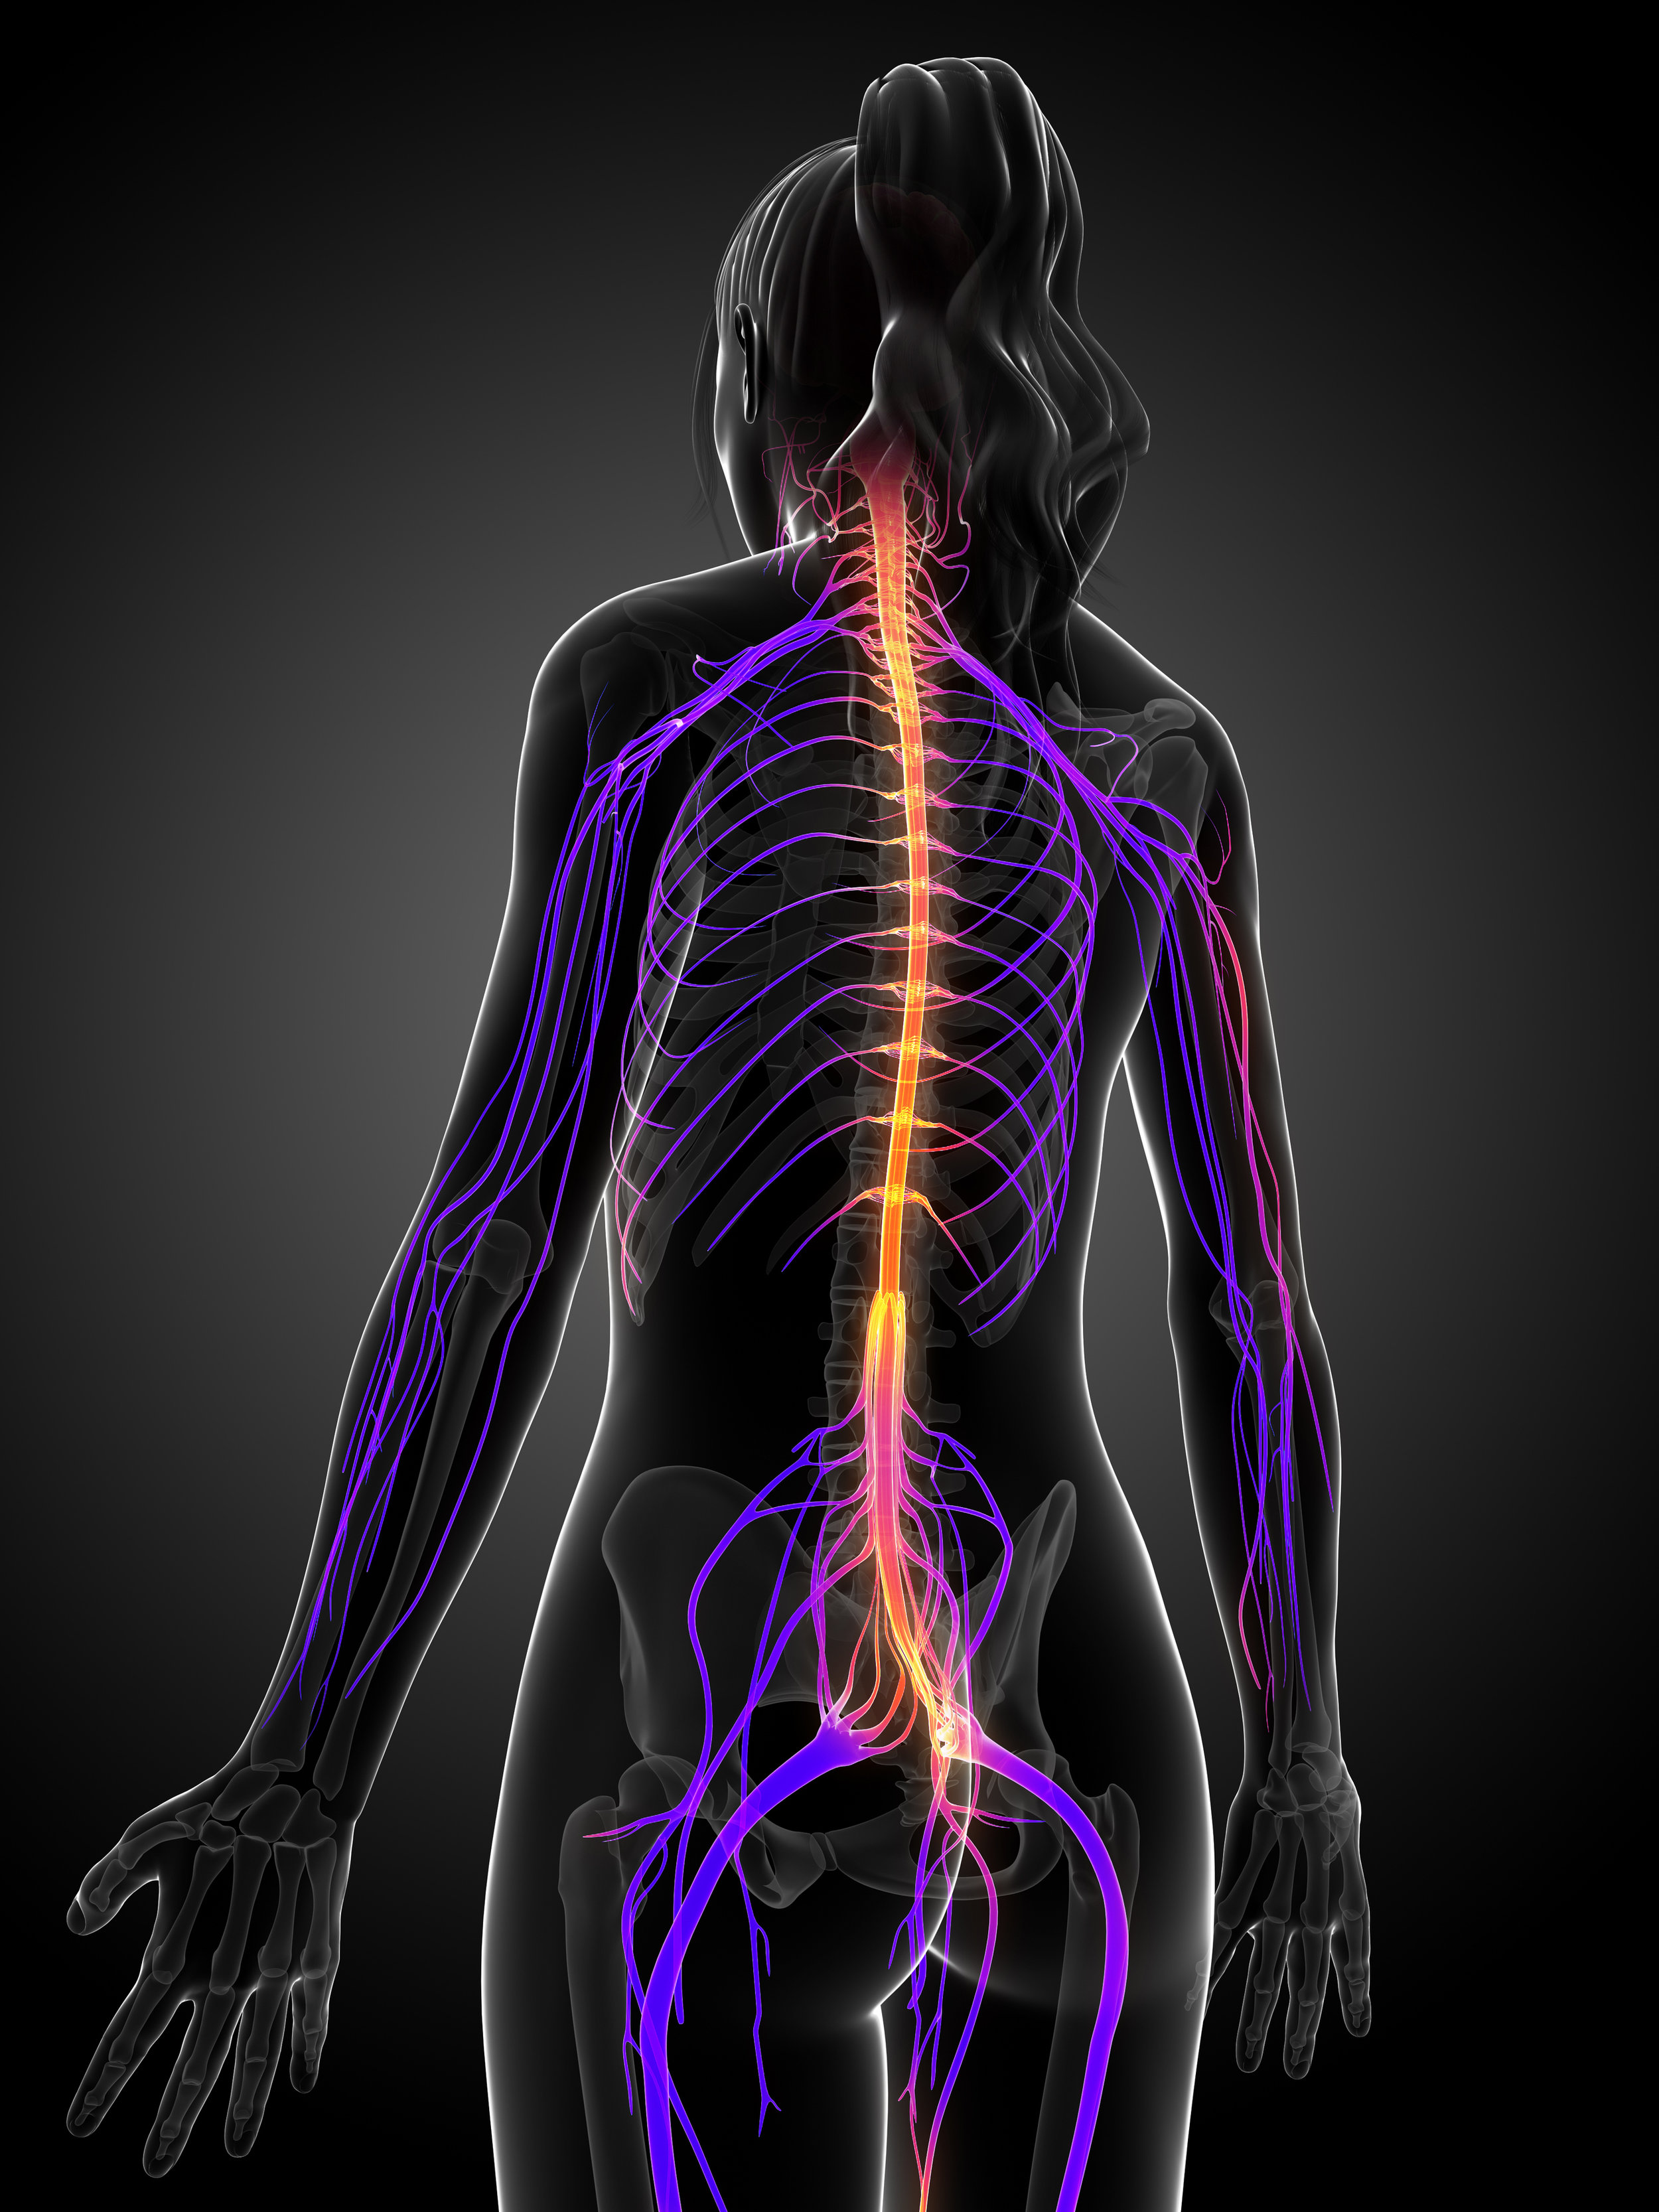 Chiropractic patient with nerve pain